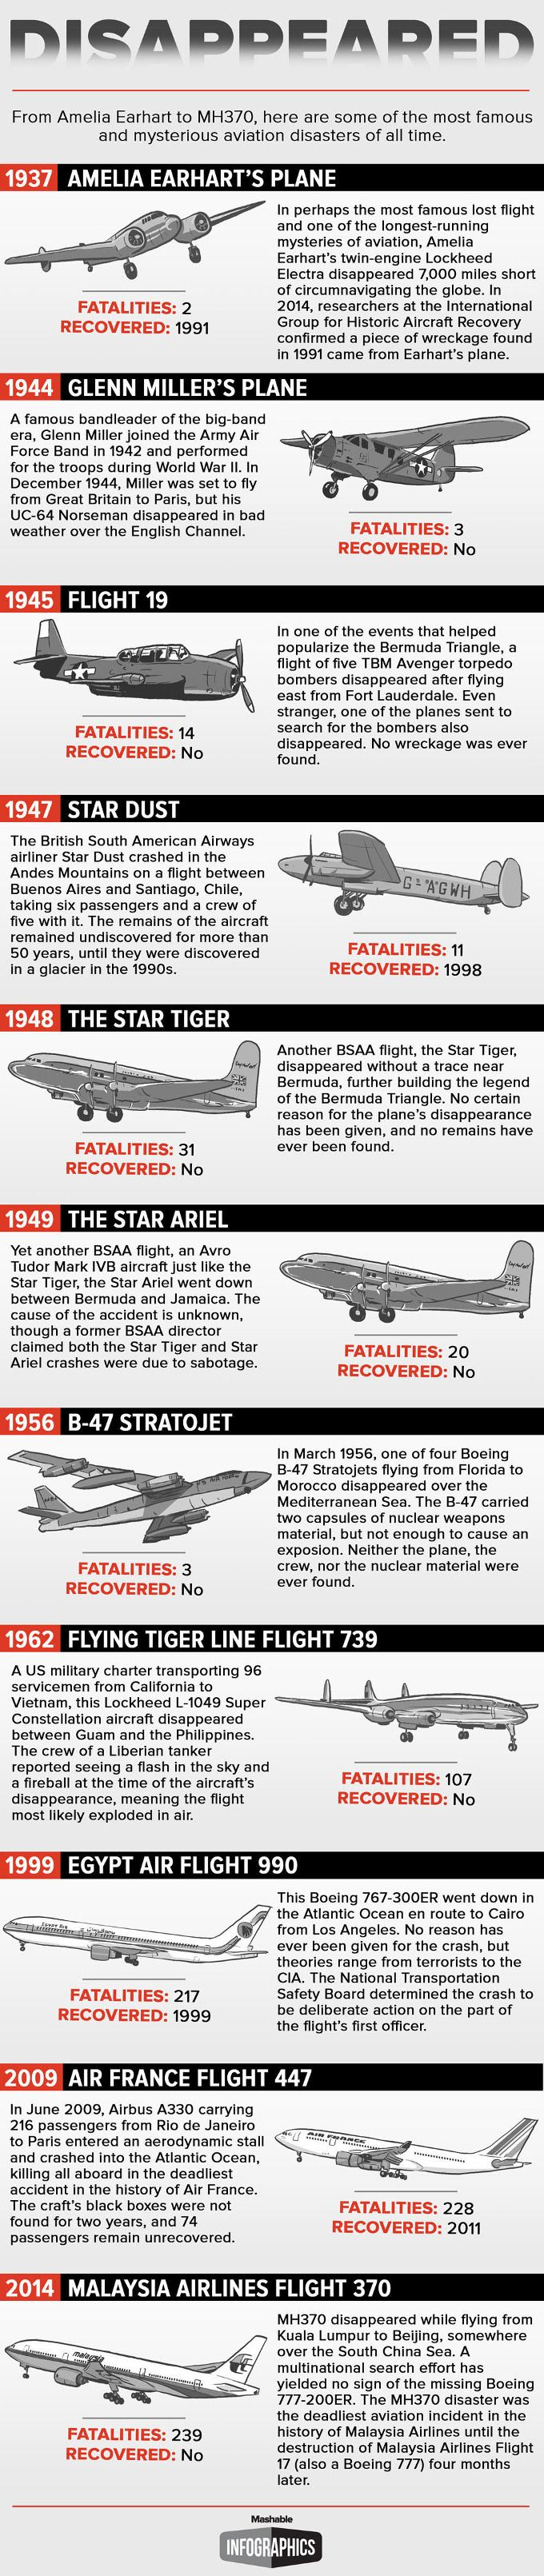 Vanished: 11 flights that mysteriously disappeared